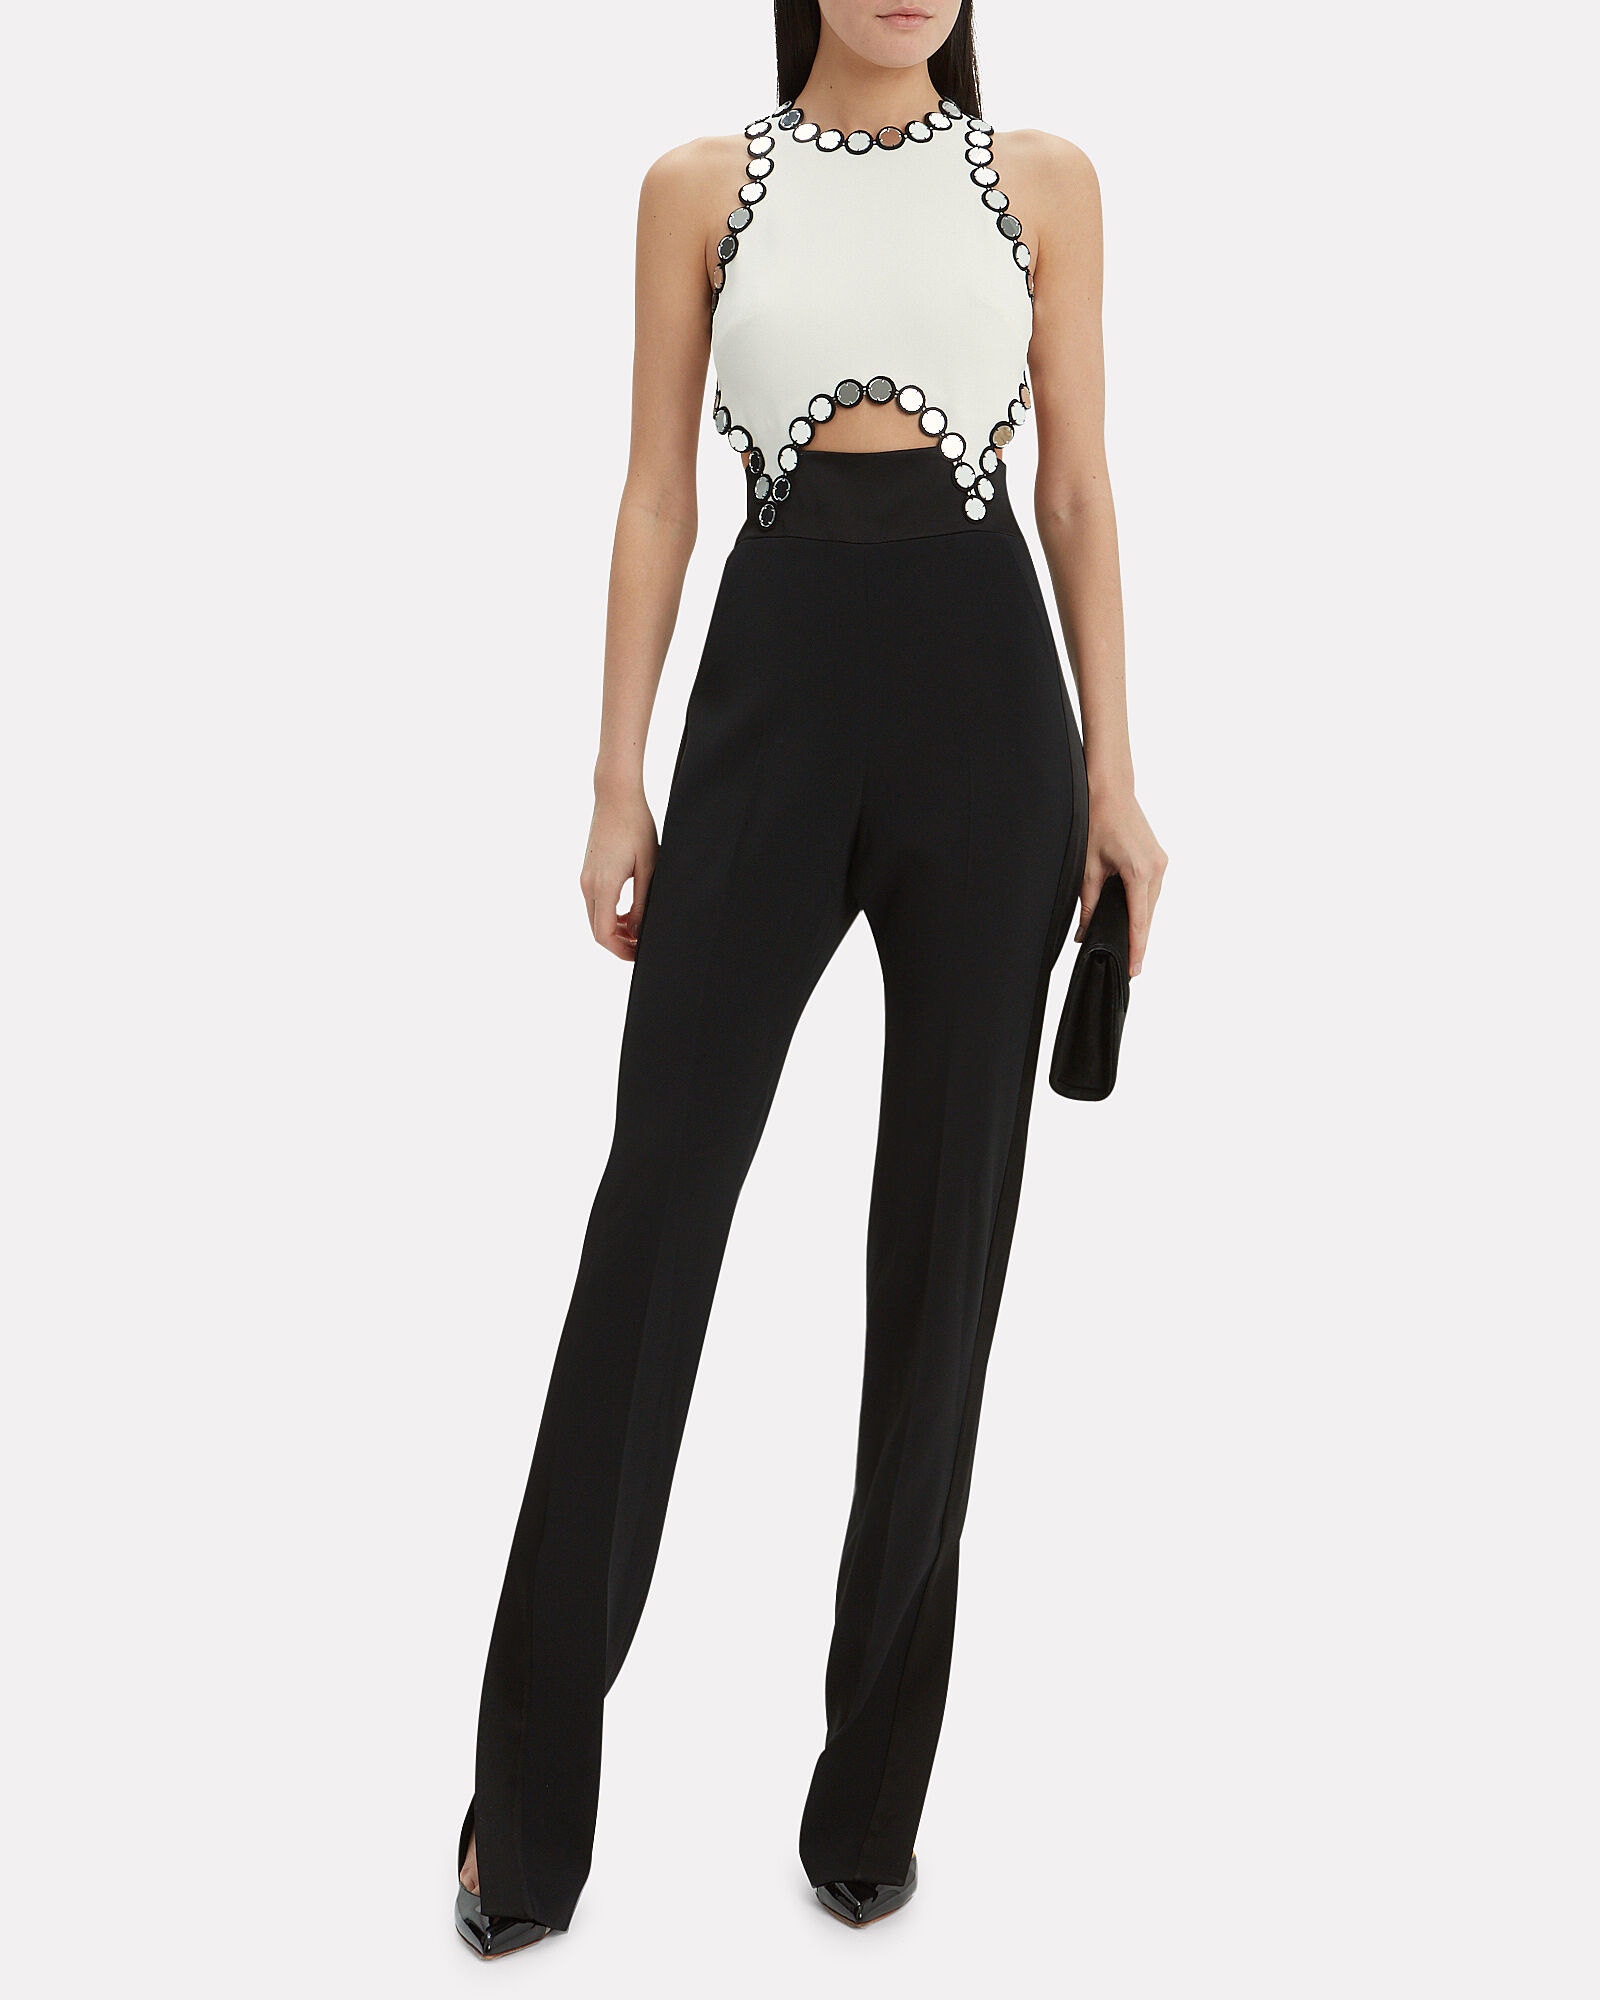 Mirror Embellished Colorblock Jumpsuit, BLK/WHT, hi-res